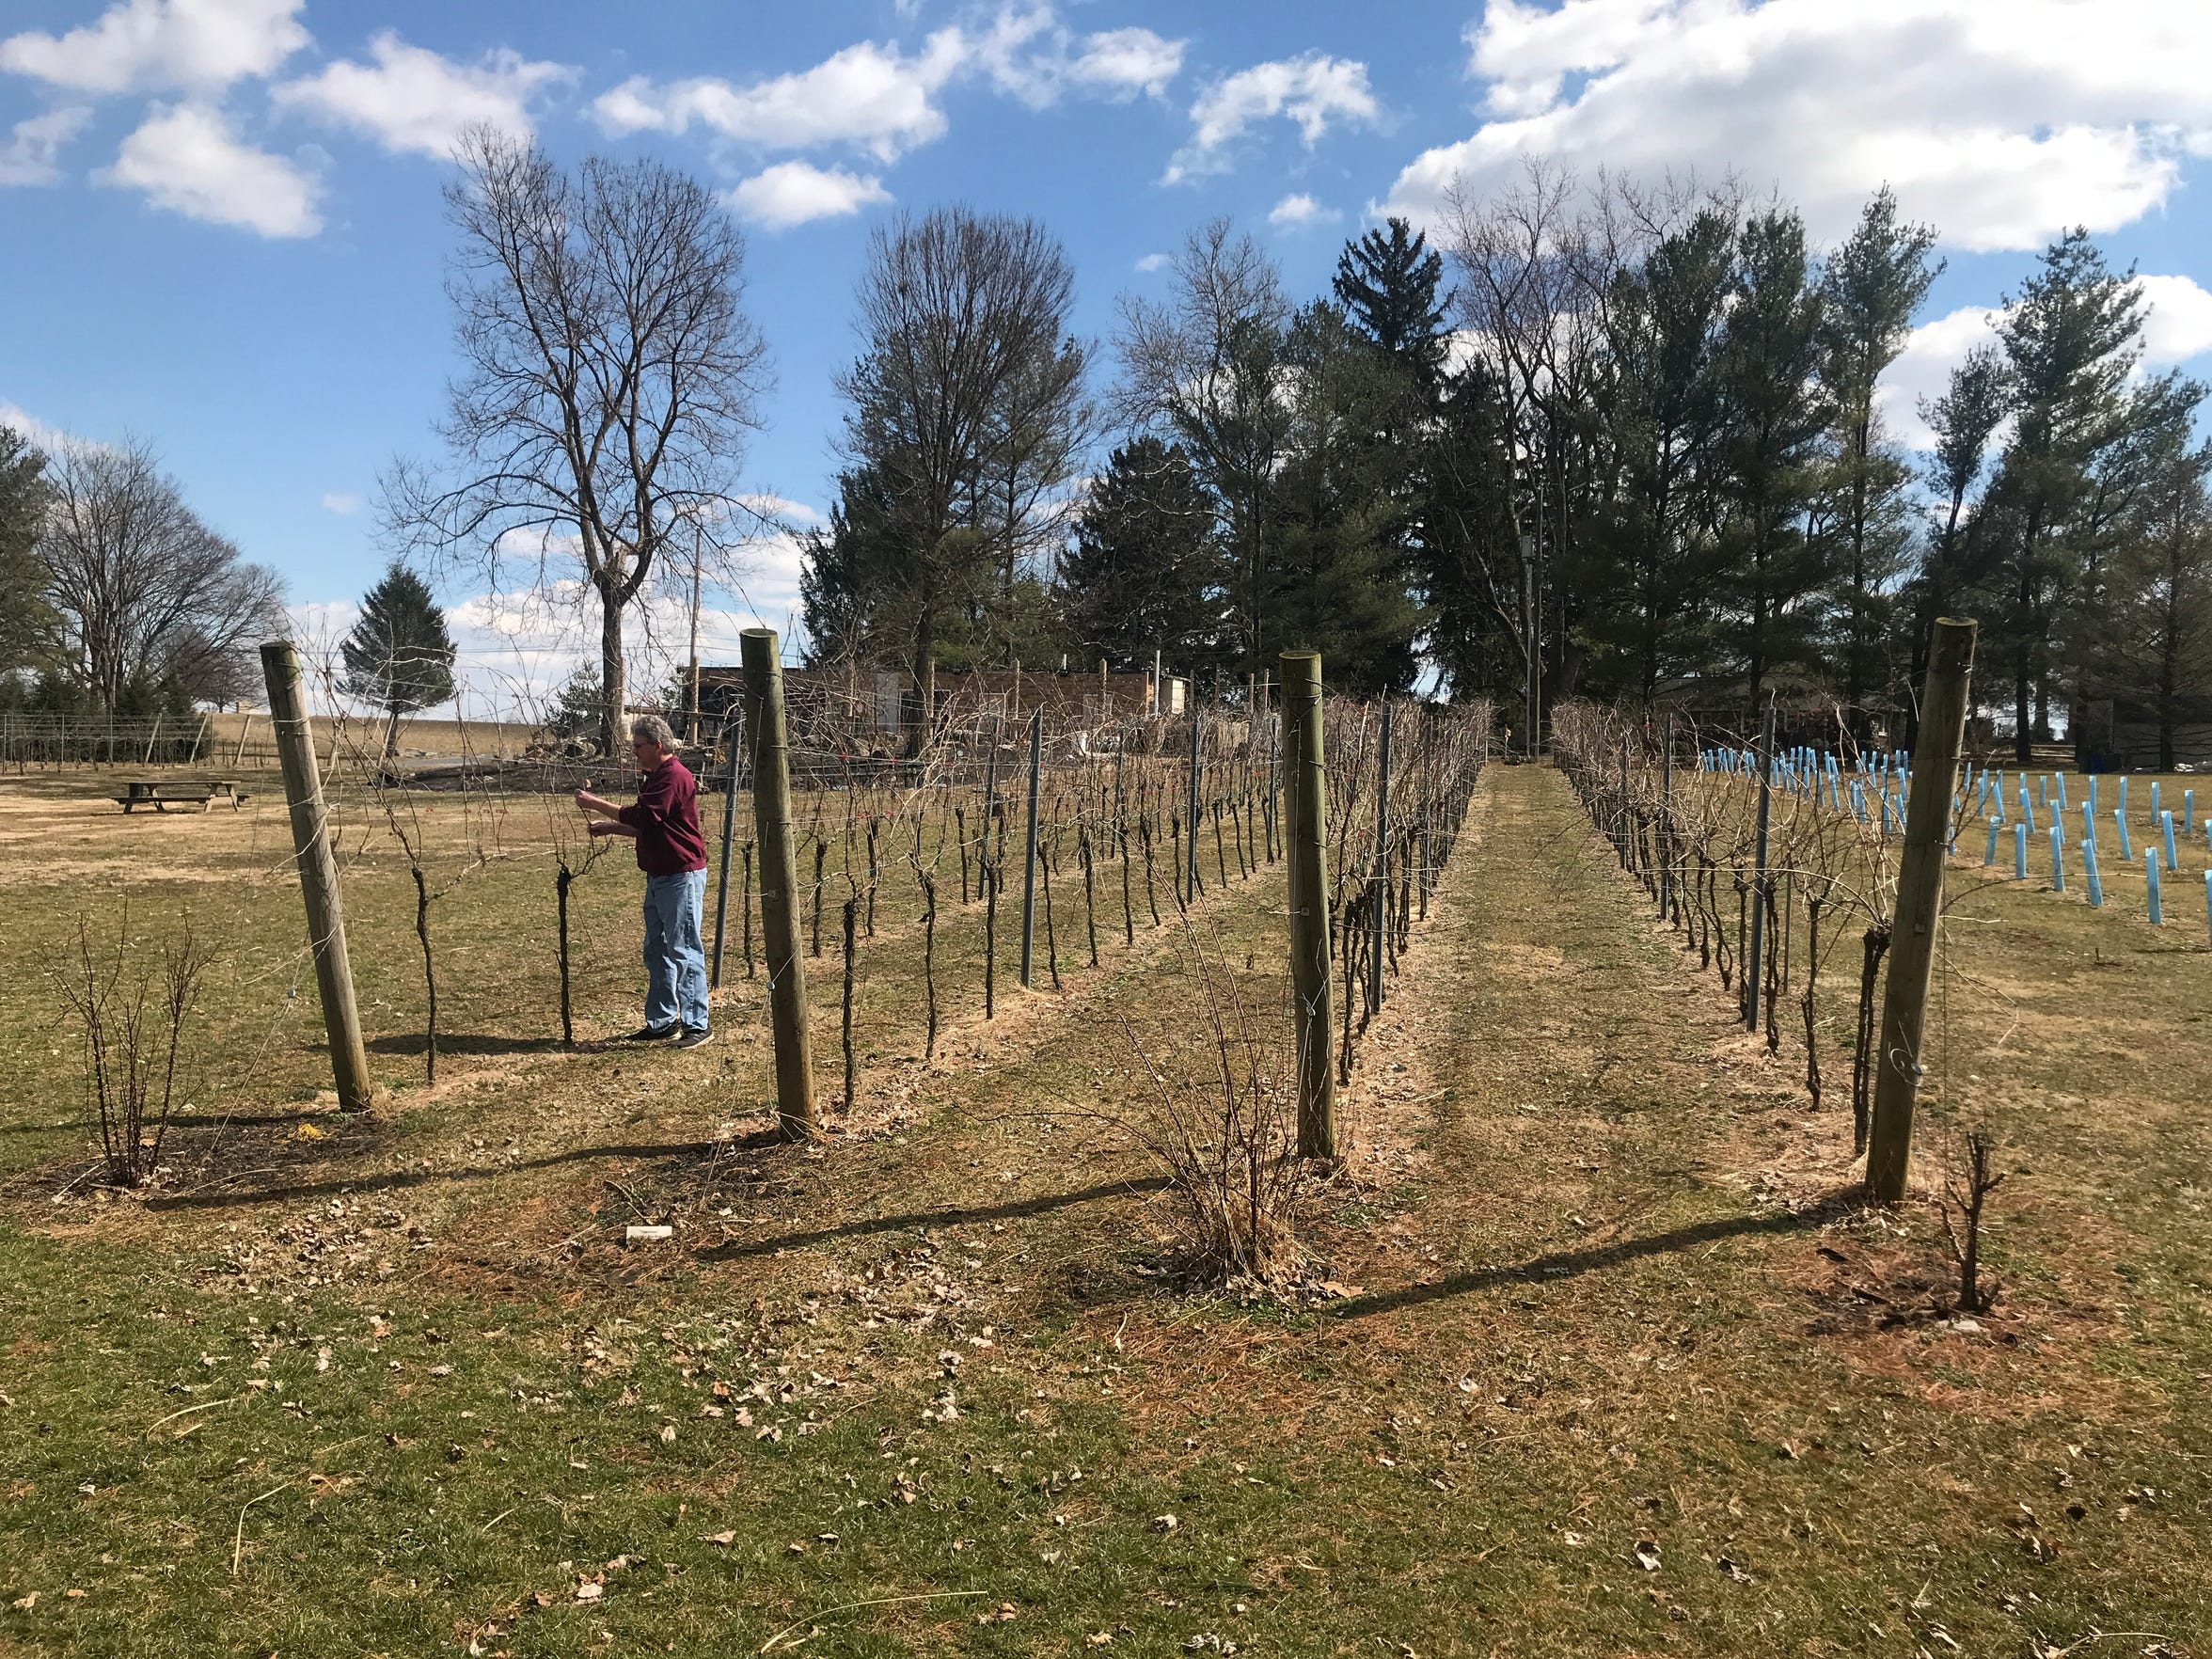 William Hartmann, owner of Royal Oaks vineyard and winery in North Cornwall Township, still plans to maintain his vines while growing industrial hemp this year.